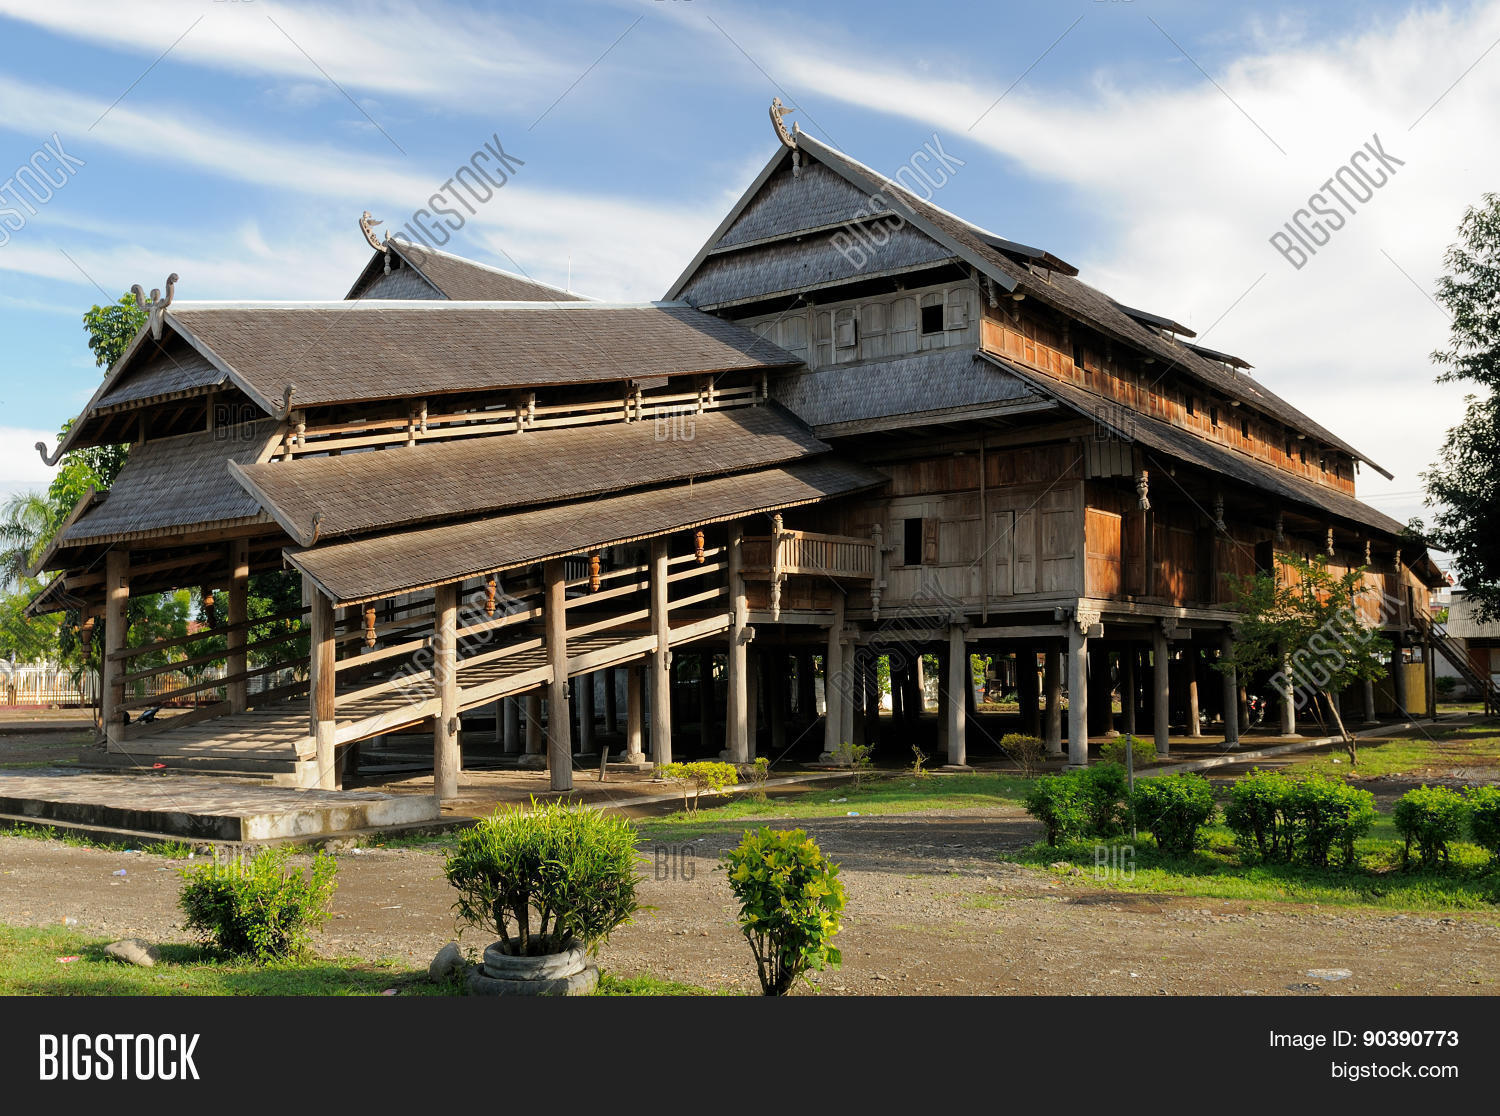 wooden rumah istana sumbawa palace of the sultan in besar town indonesia